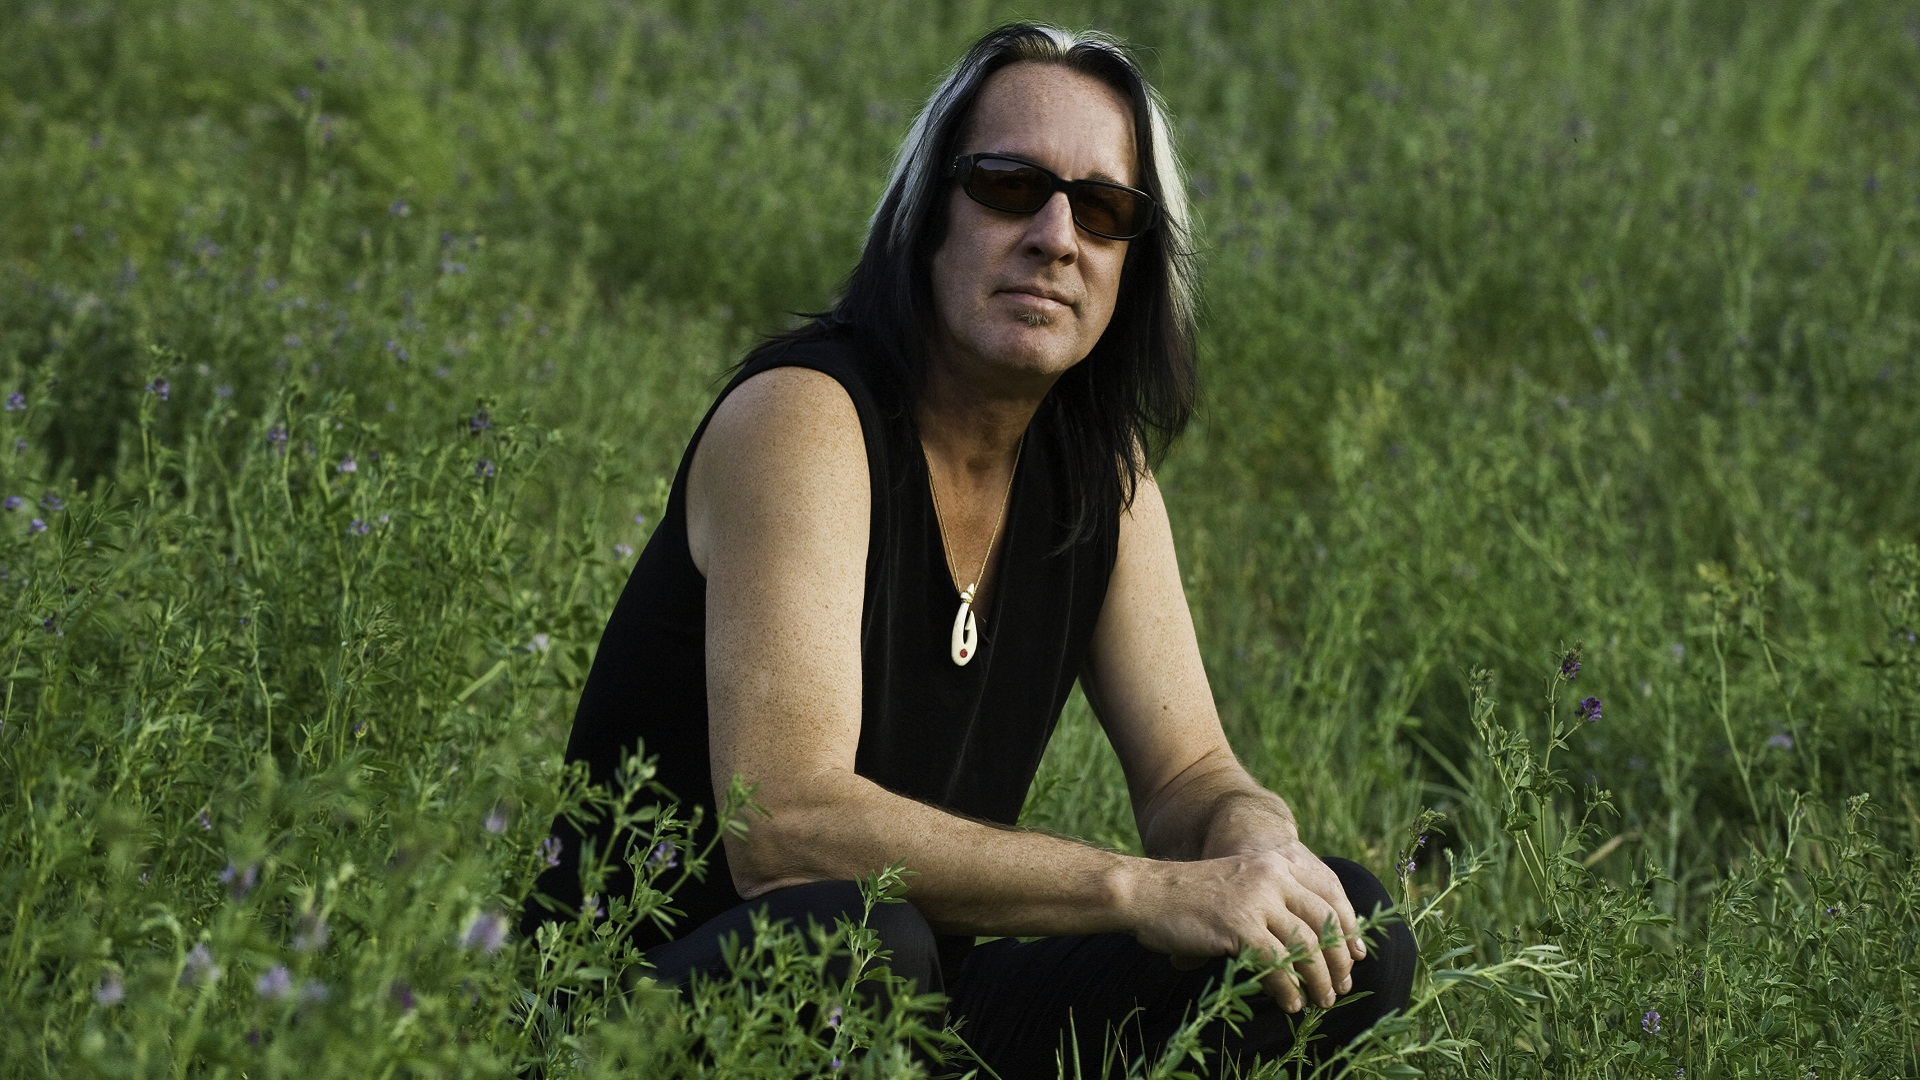 Black And White av Todd Rundgren